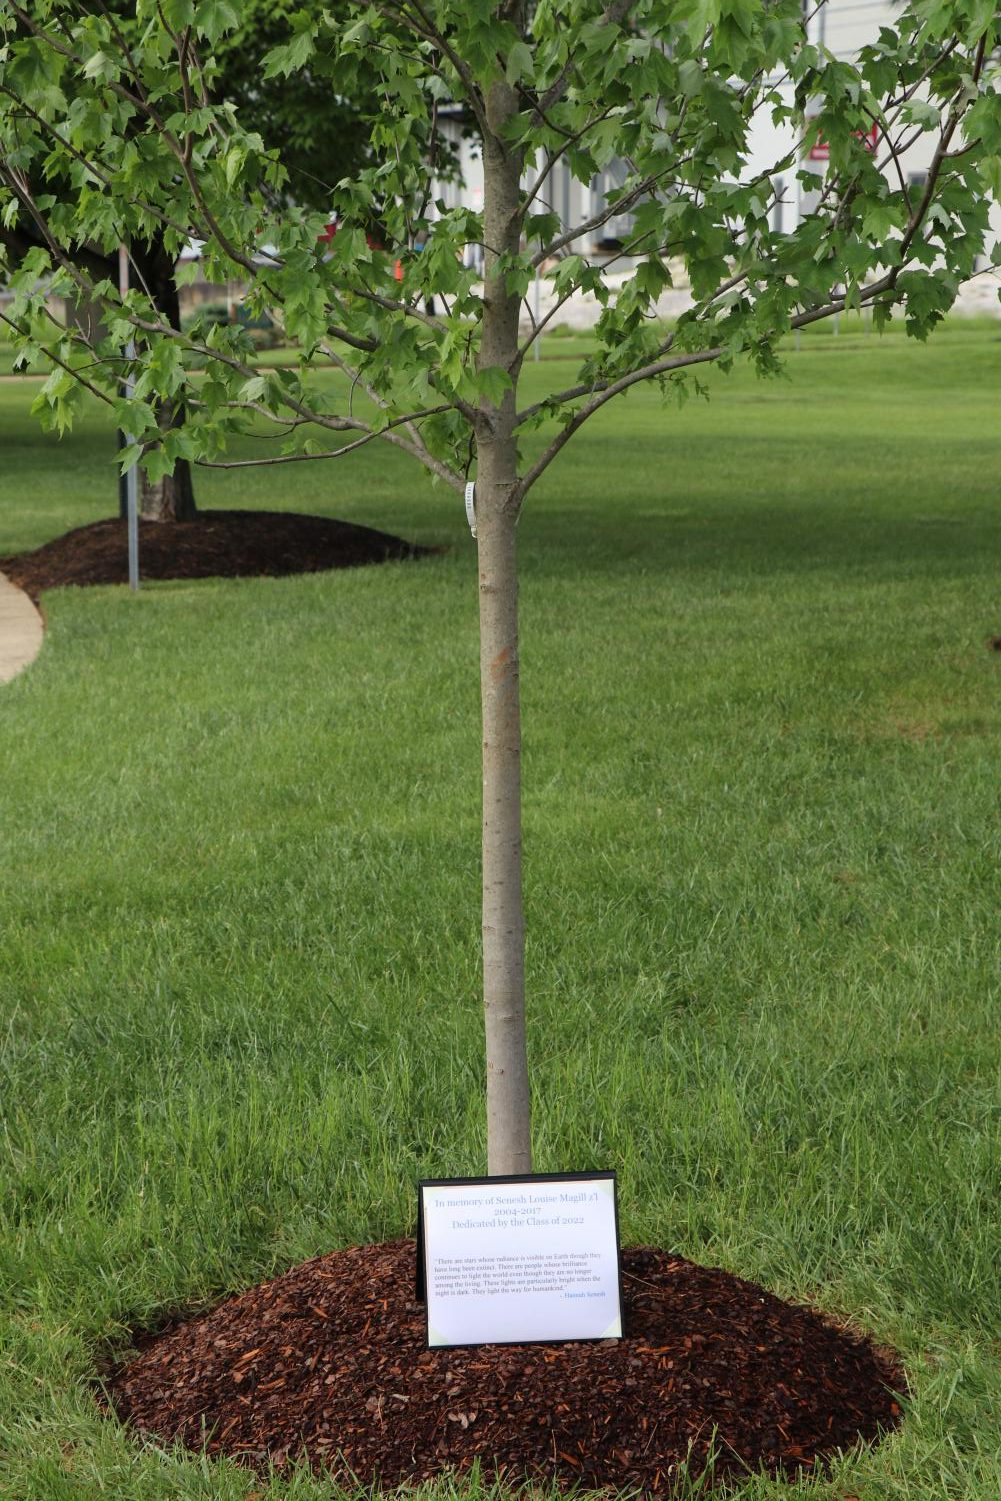 Eighth graders had a grade minyan followed by a tree dedication in honor of Senesh Magill. May 15 marks the anniversary of Magill's passing.